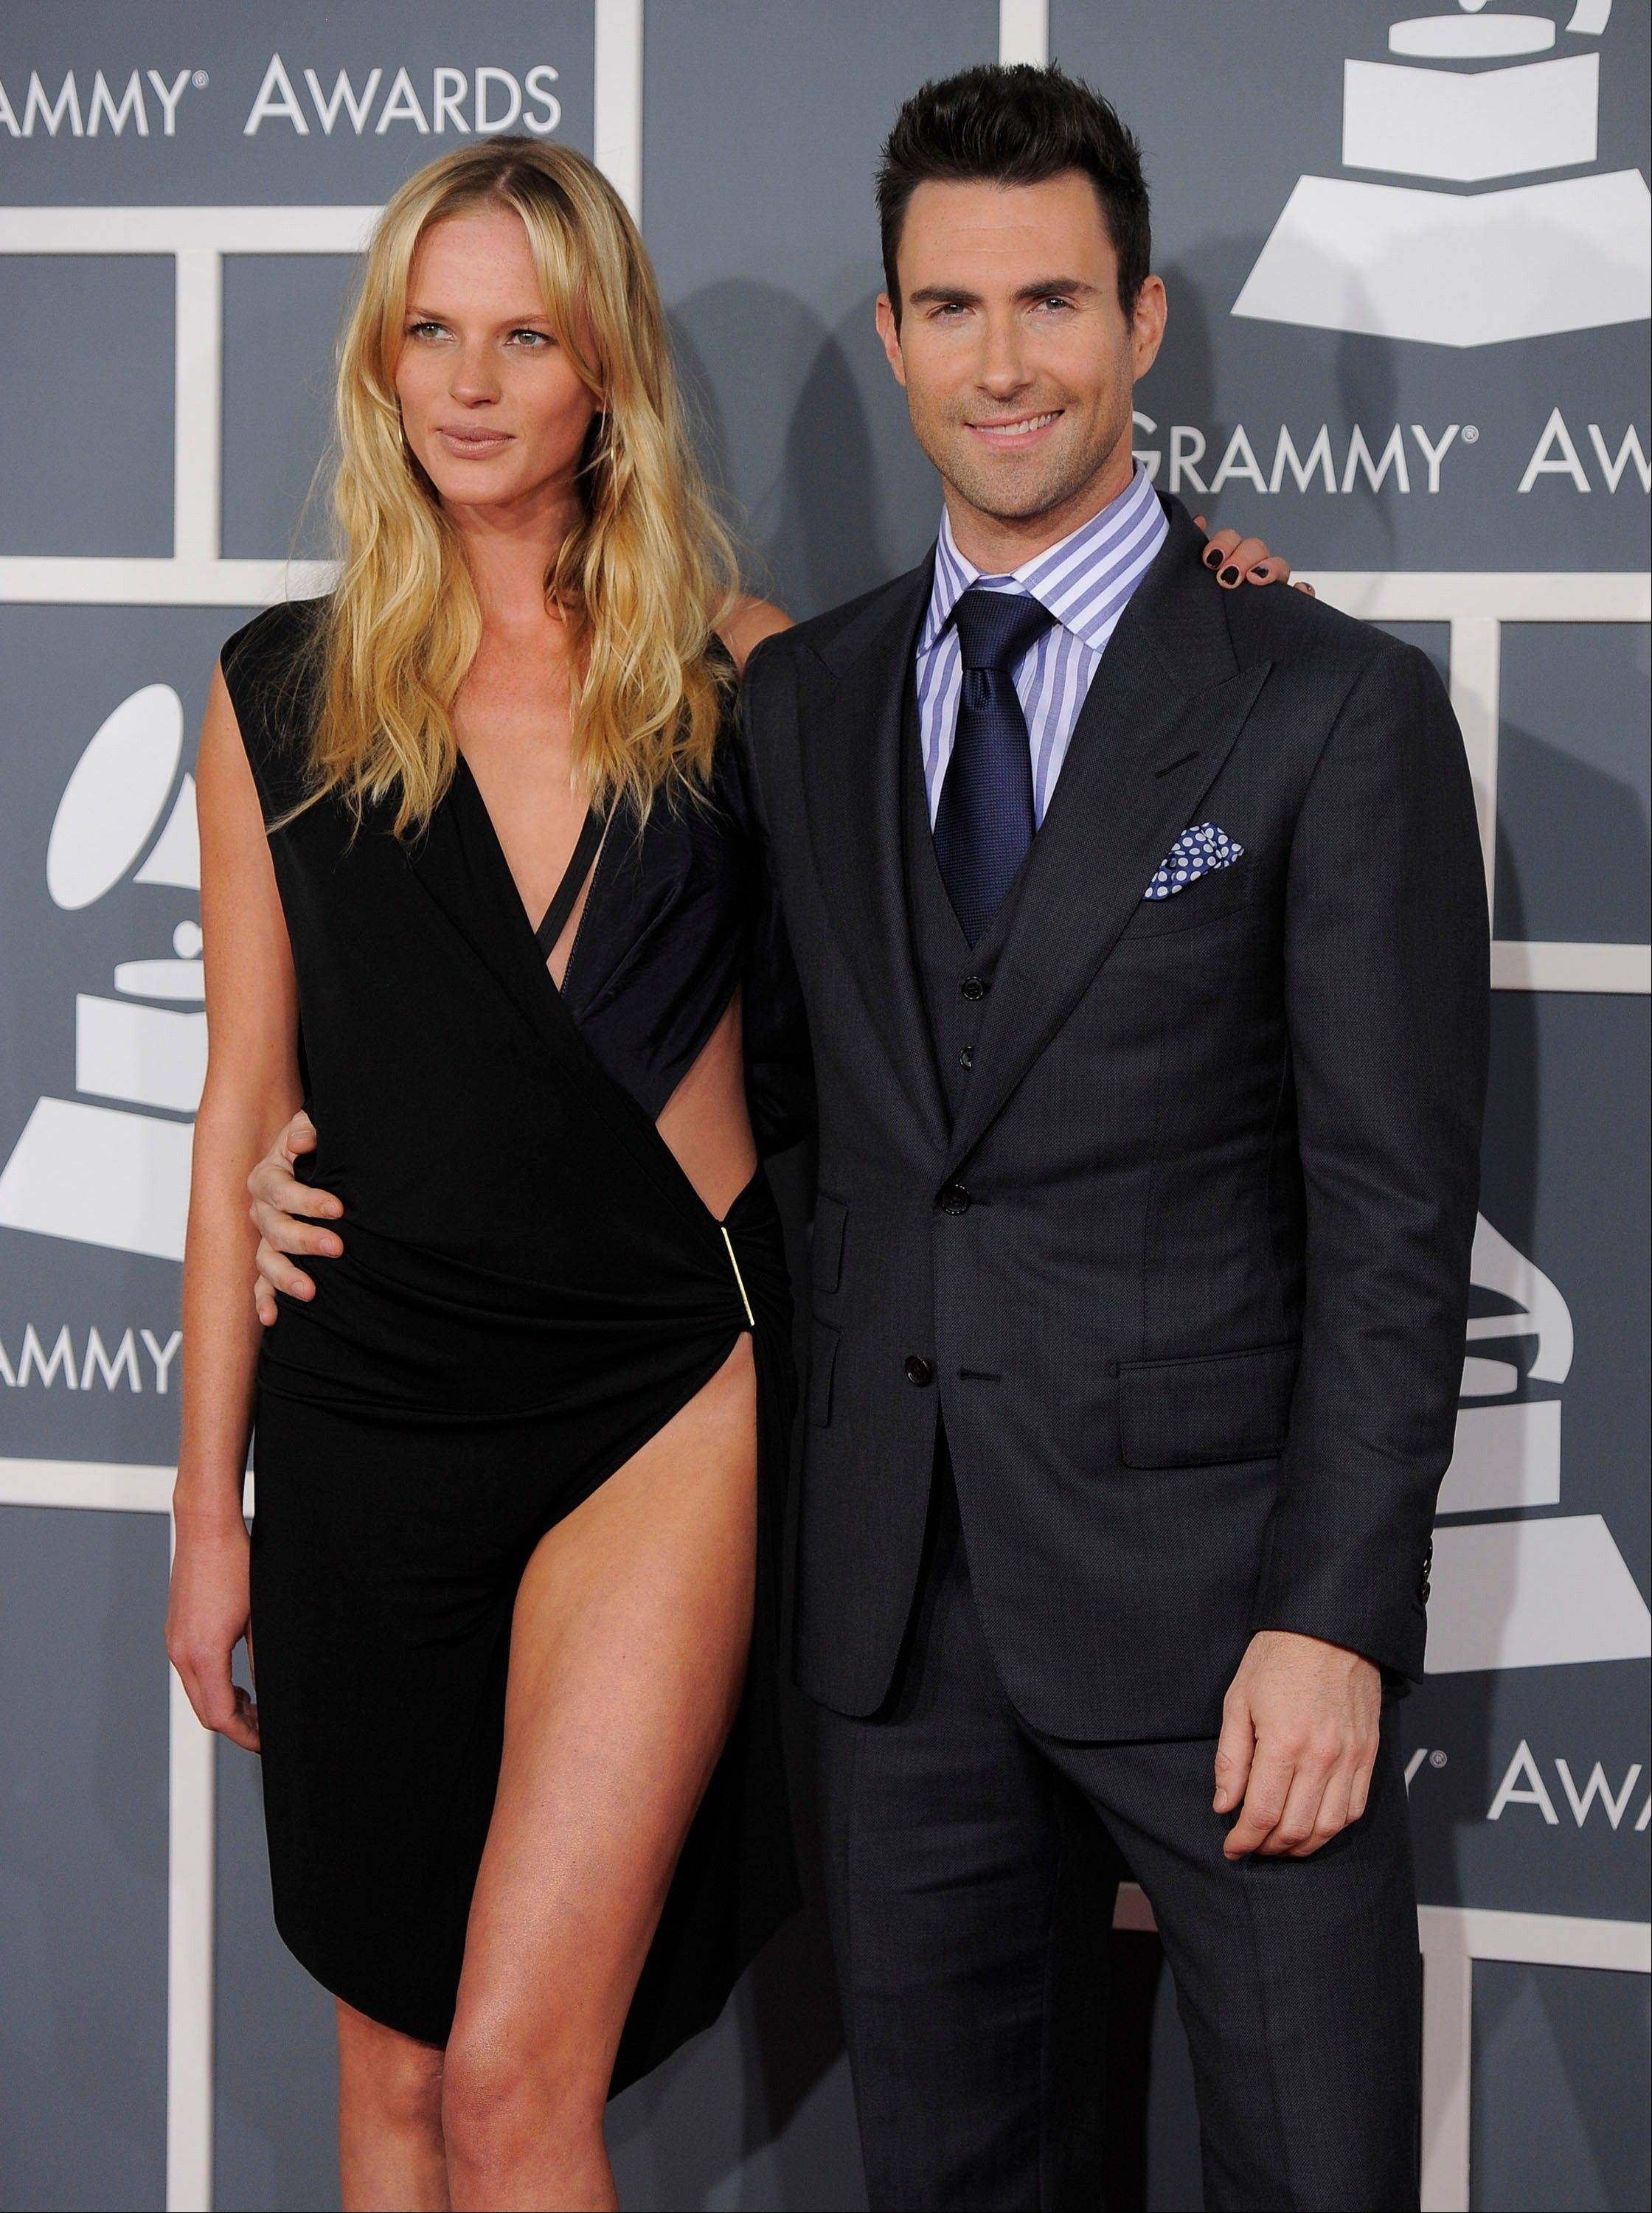 Adam Levine, right, and Anne Vyalitsyna arrive Sunday at the 54th annual Grammy Awards in Los Angeles.